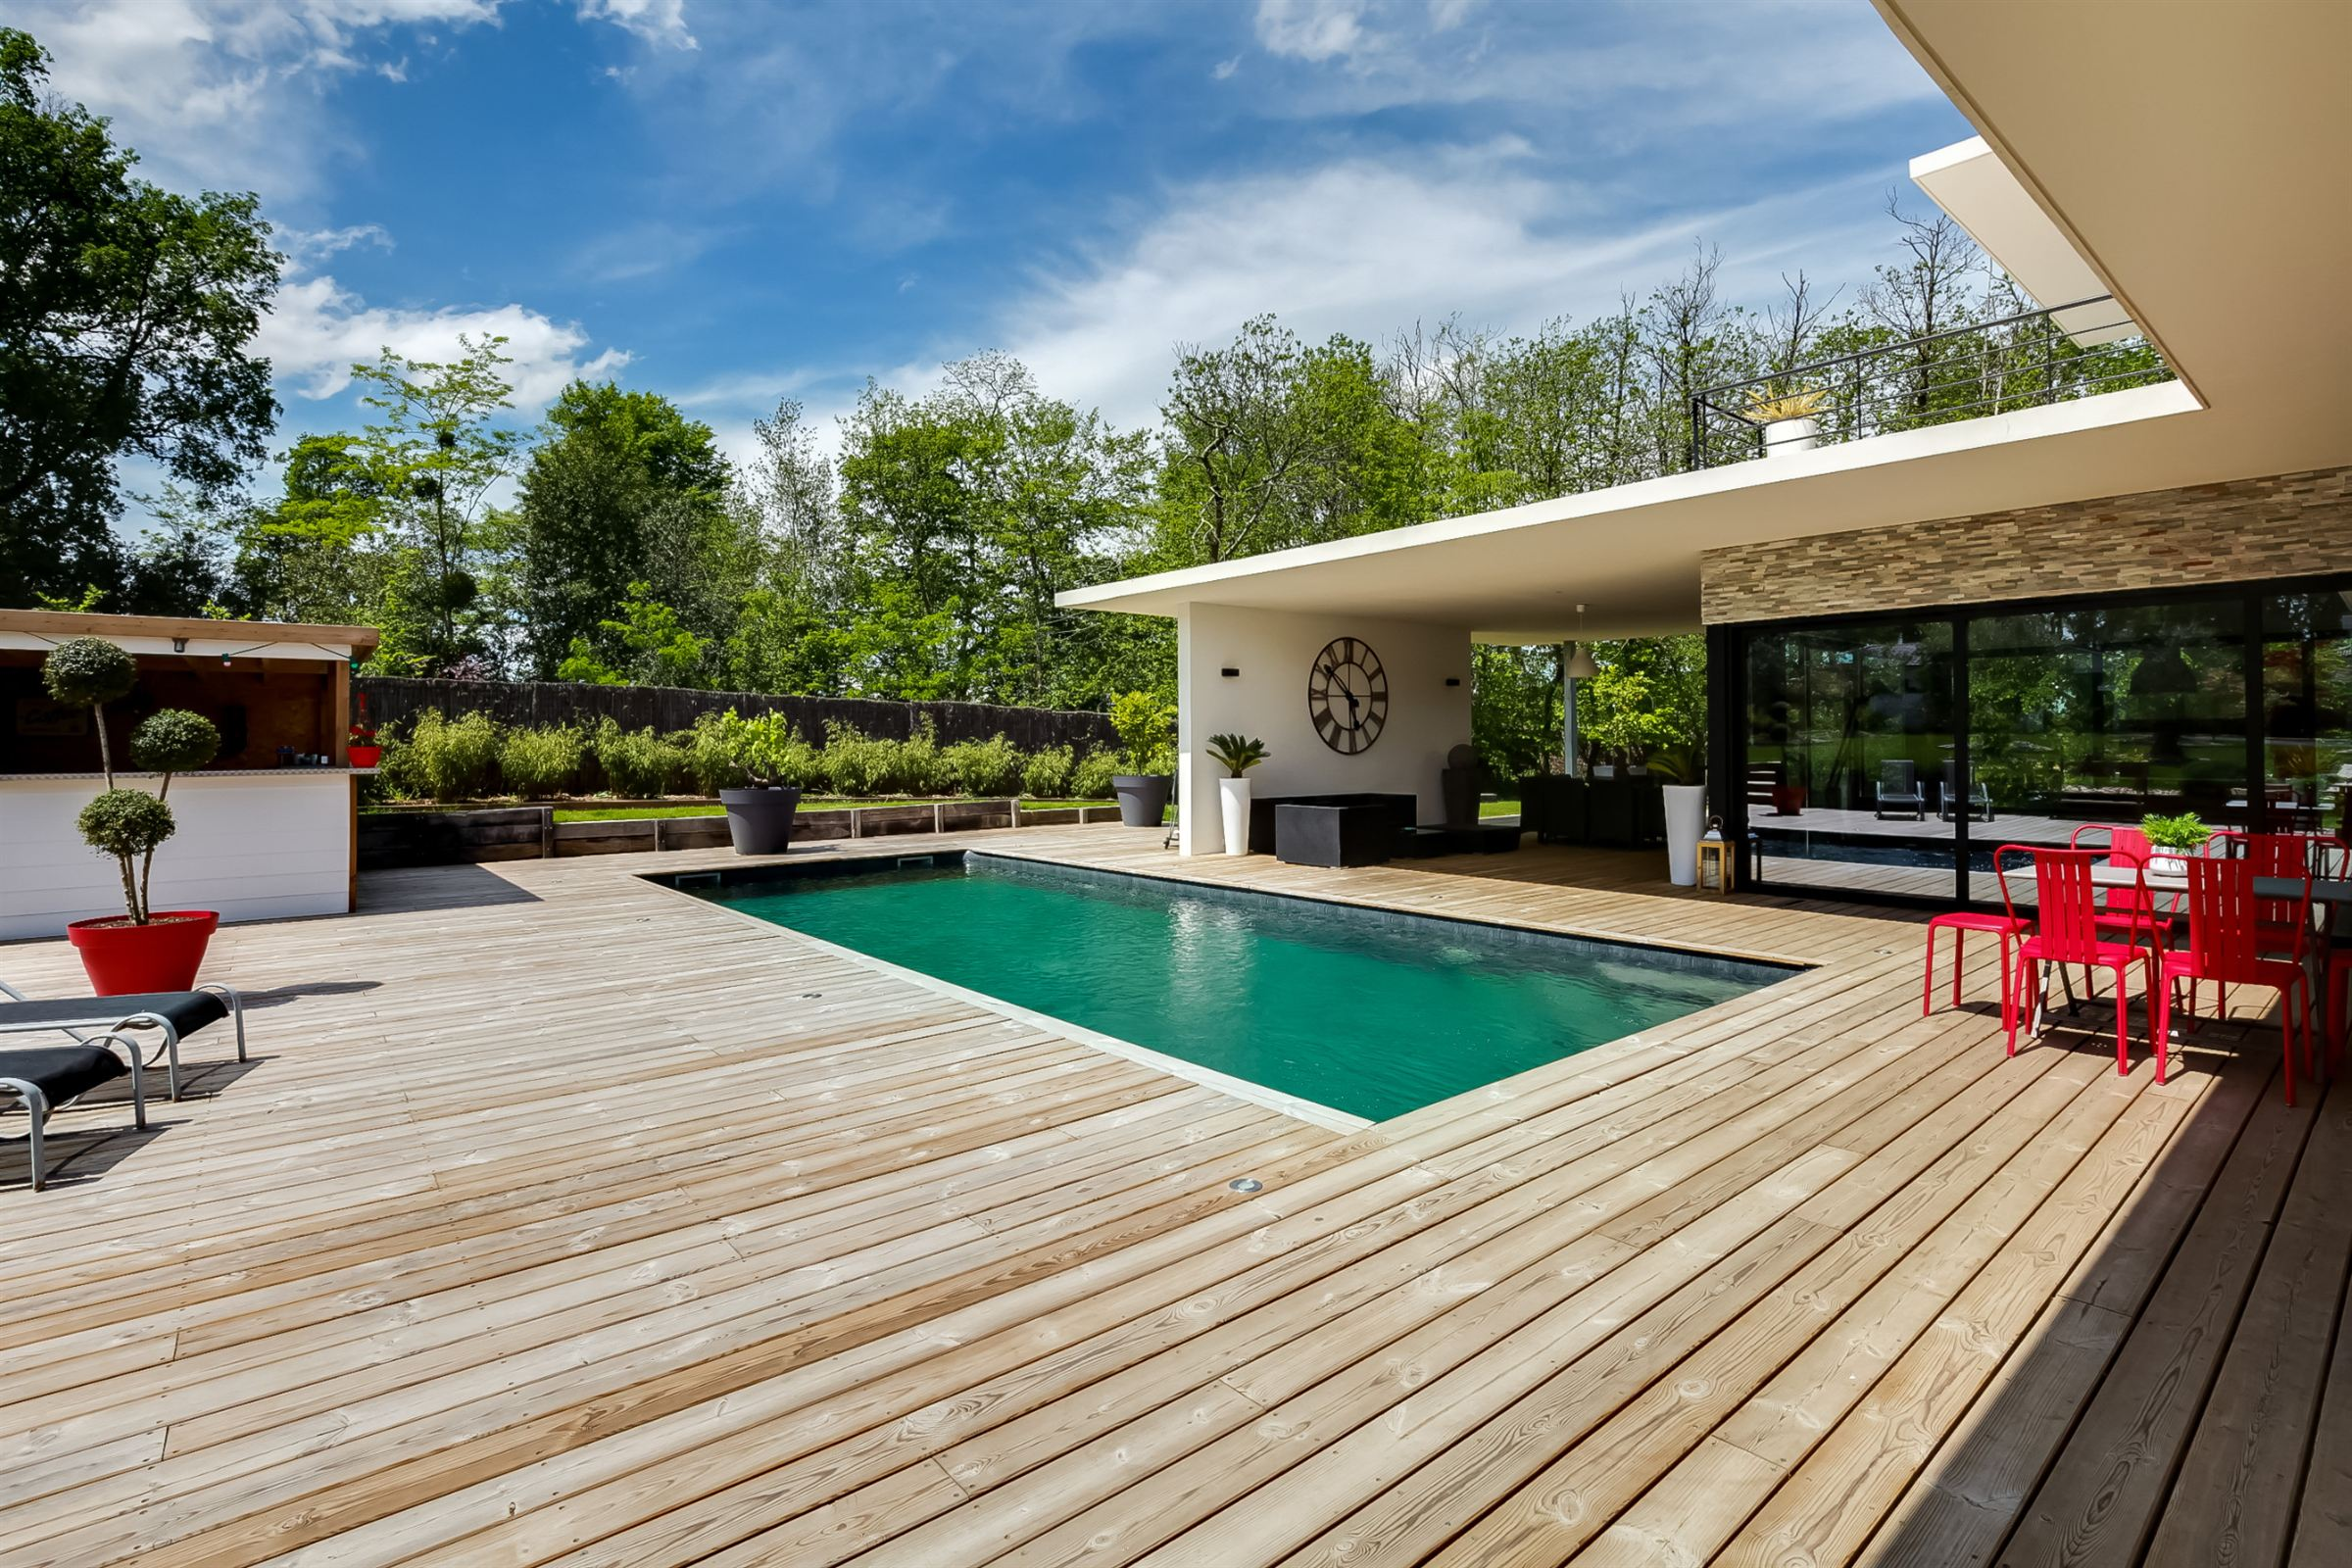 Single Family Home for Sale at BOULIAC LOVELY ARCHITECT HOME IN A LANDSCAPED GARDEN Bordeaux, Aquitaine, 33000 France